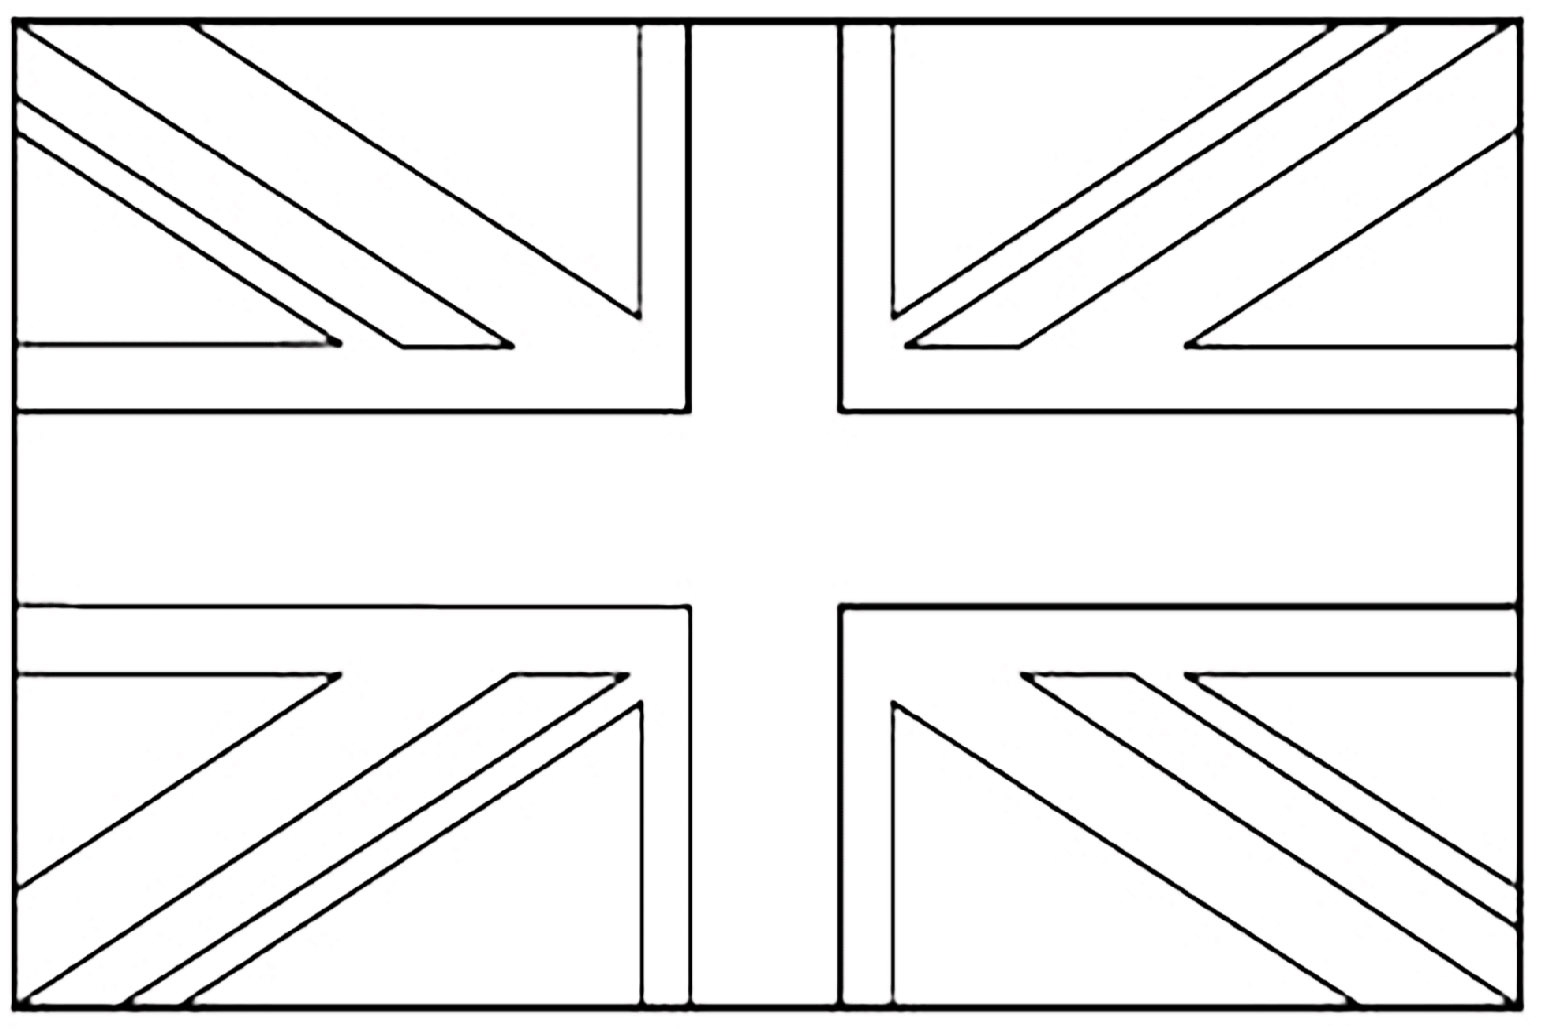 United Kingdom Union Jack - Flags Coloring Pages For Kids To Print - Free Printable Union Jack Flag To Colour